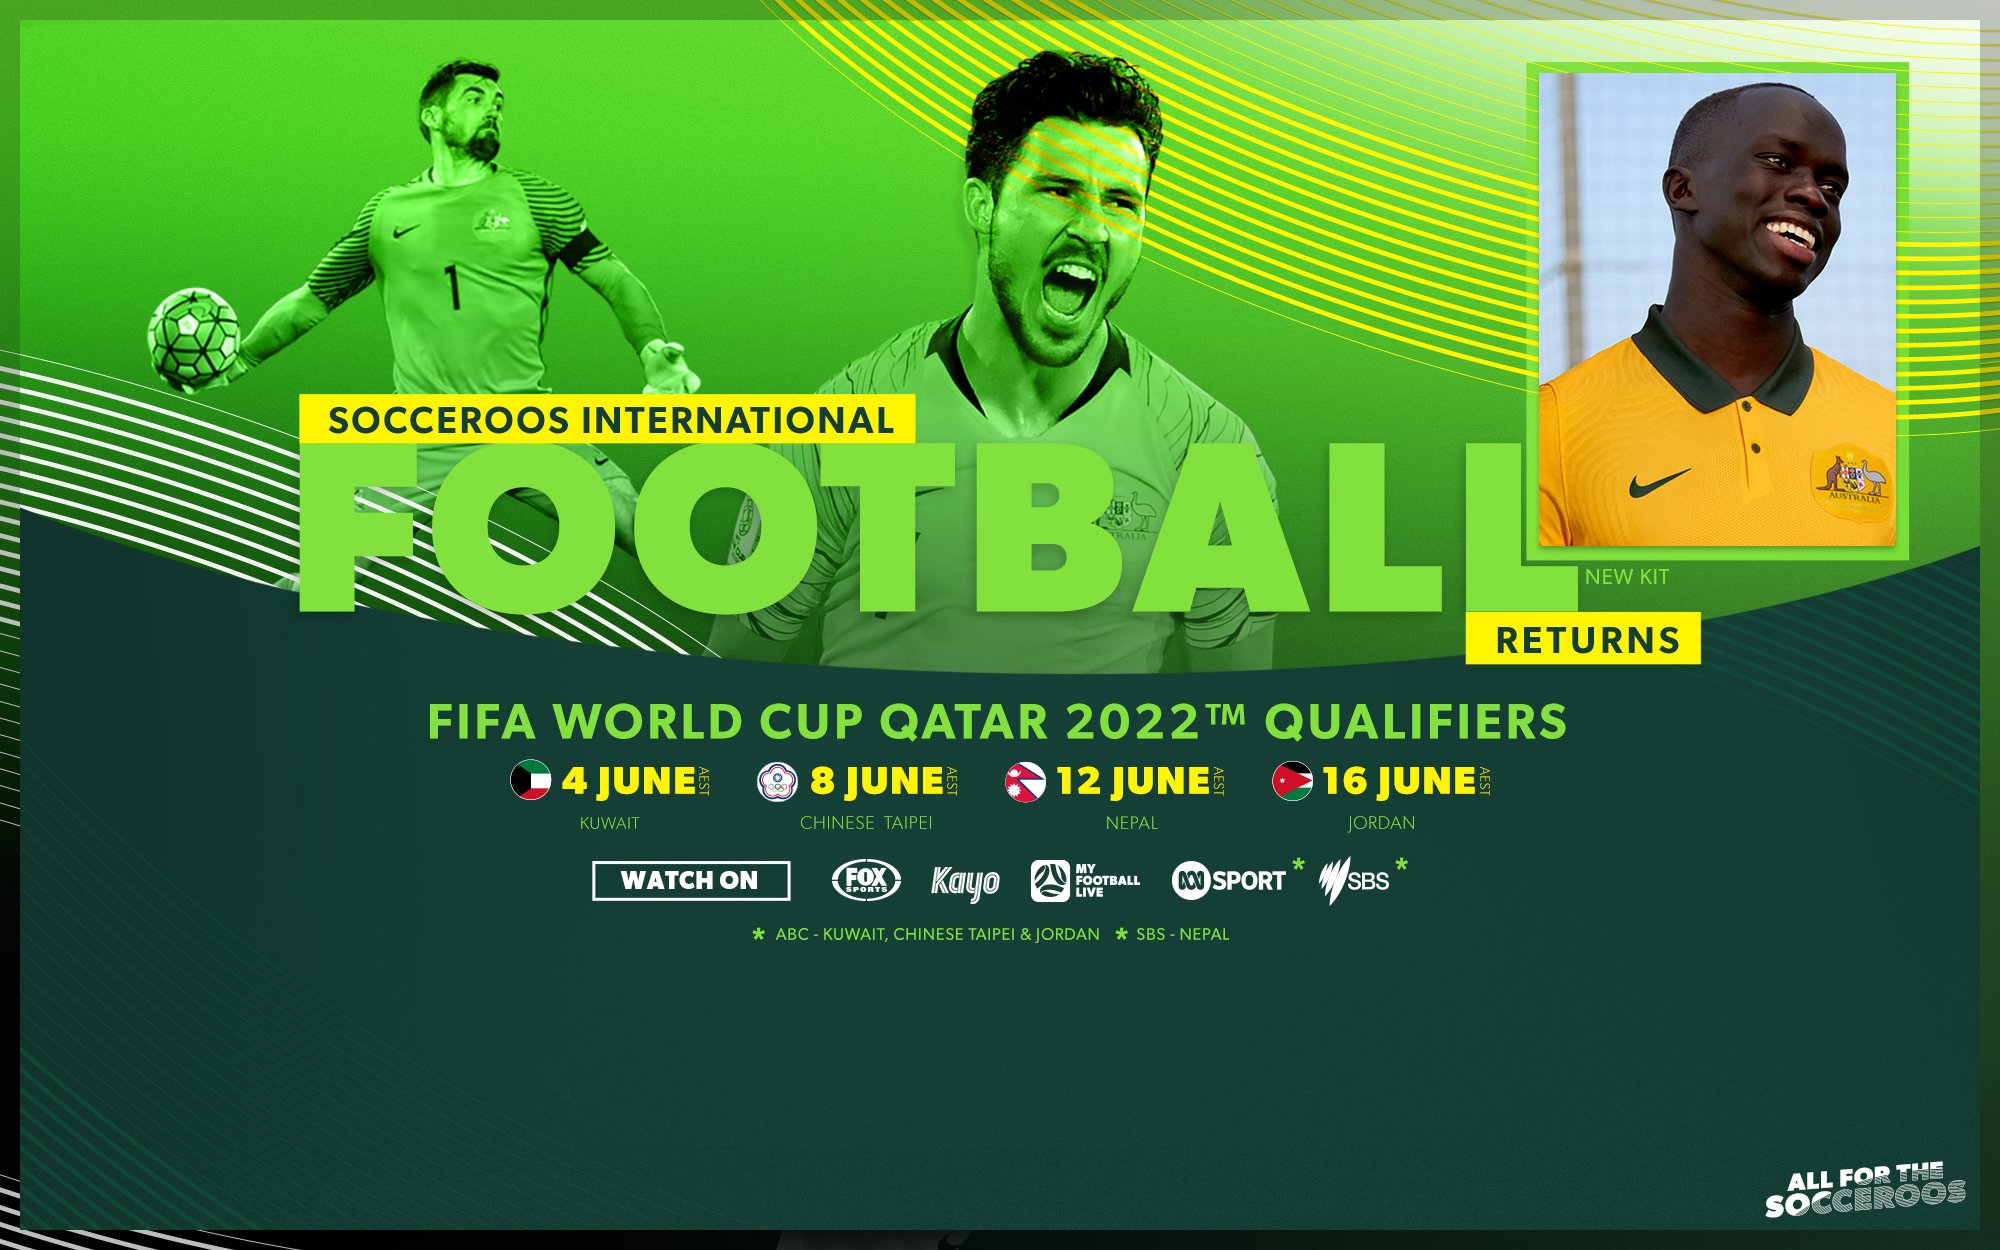 Final Information: Learn how to watch Socceroos June FIFA World Cup Qualifiers